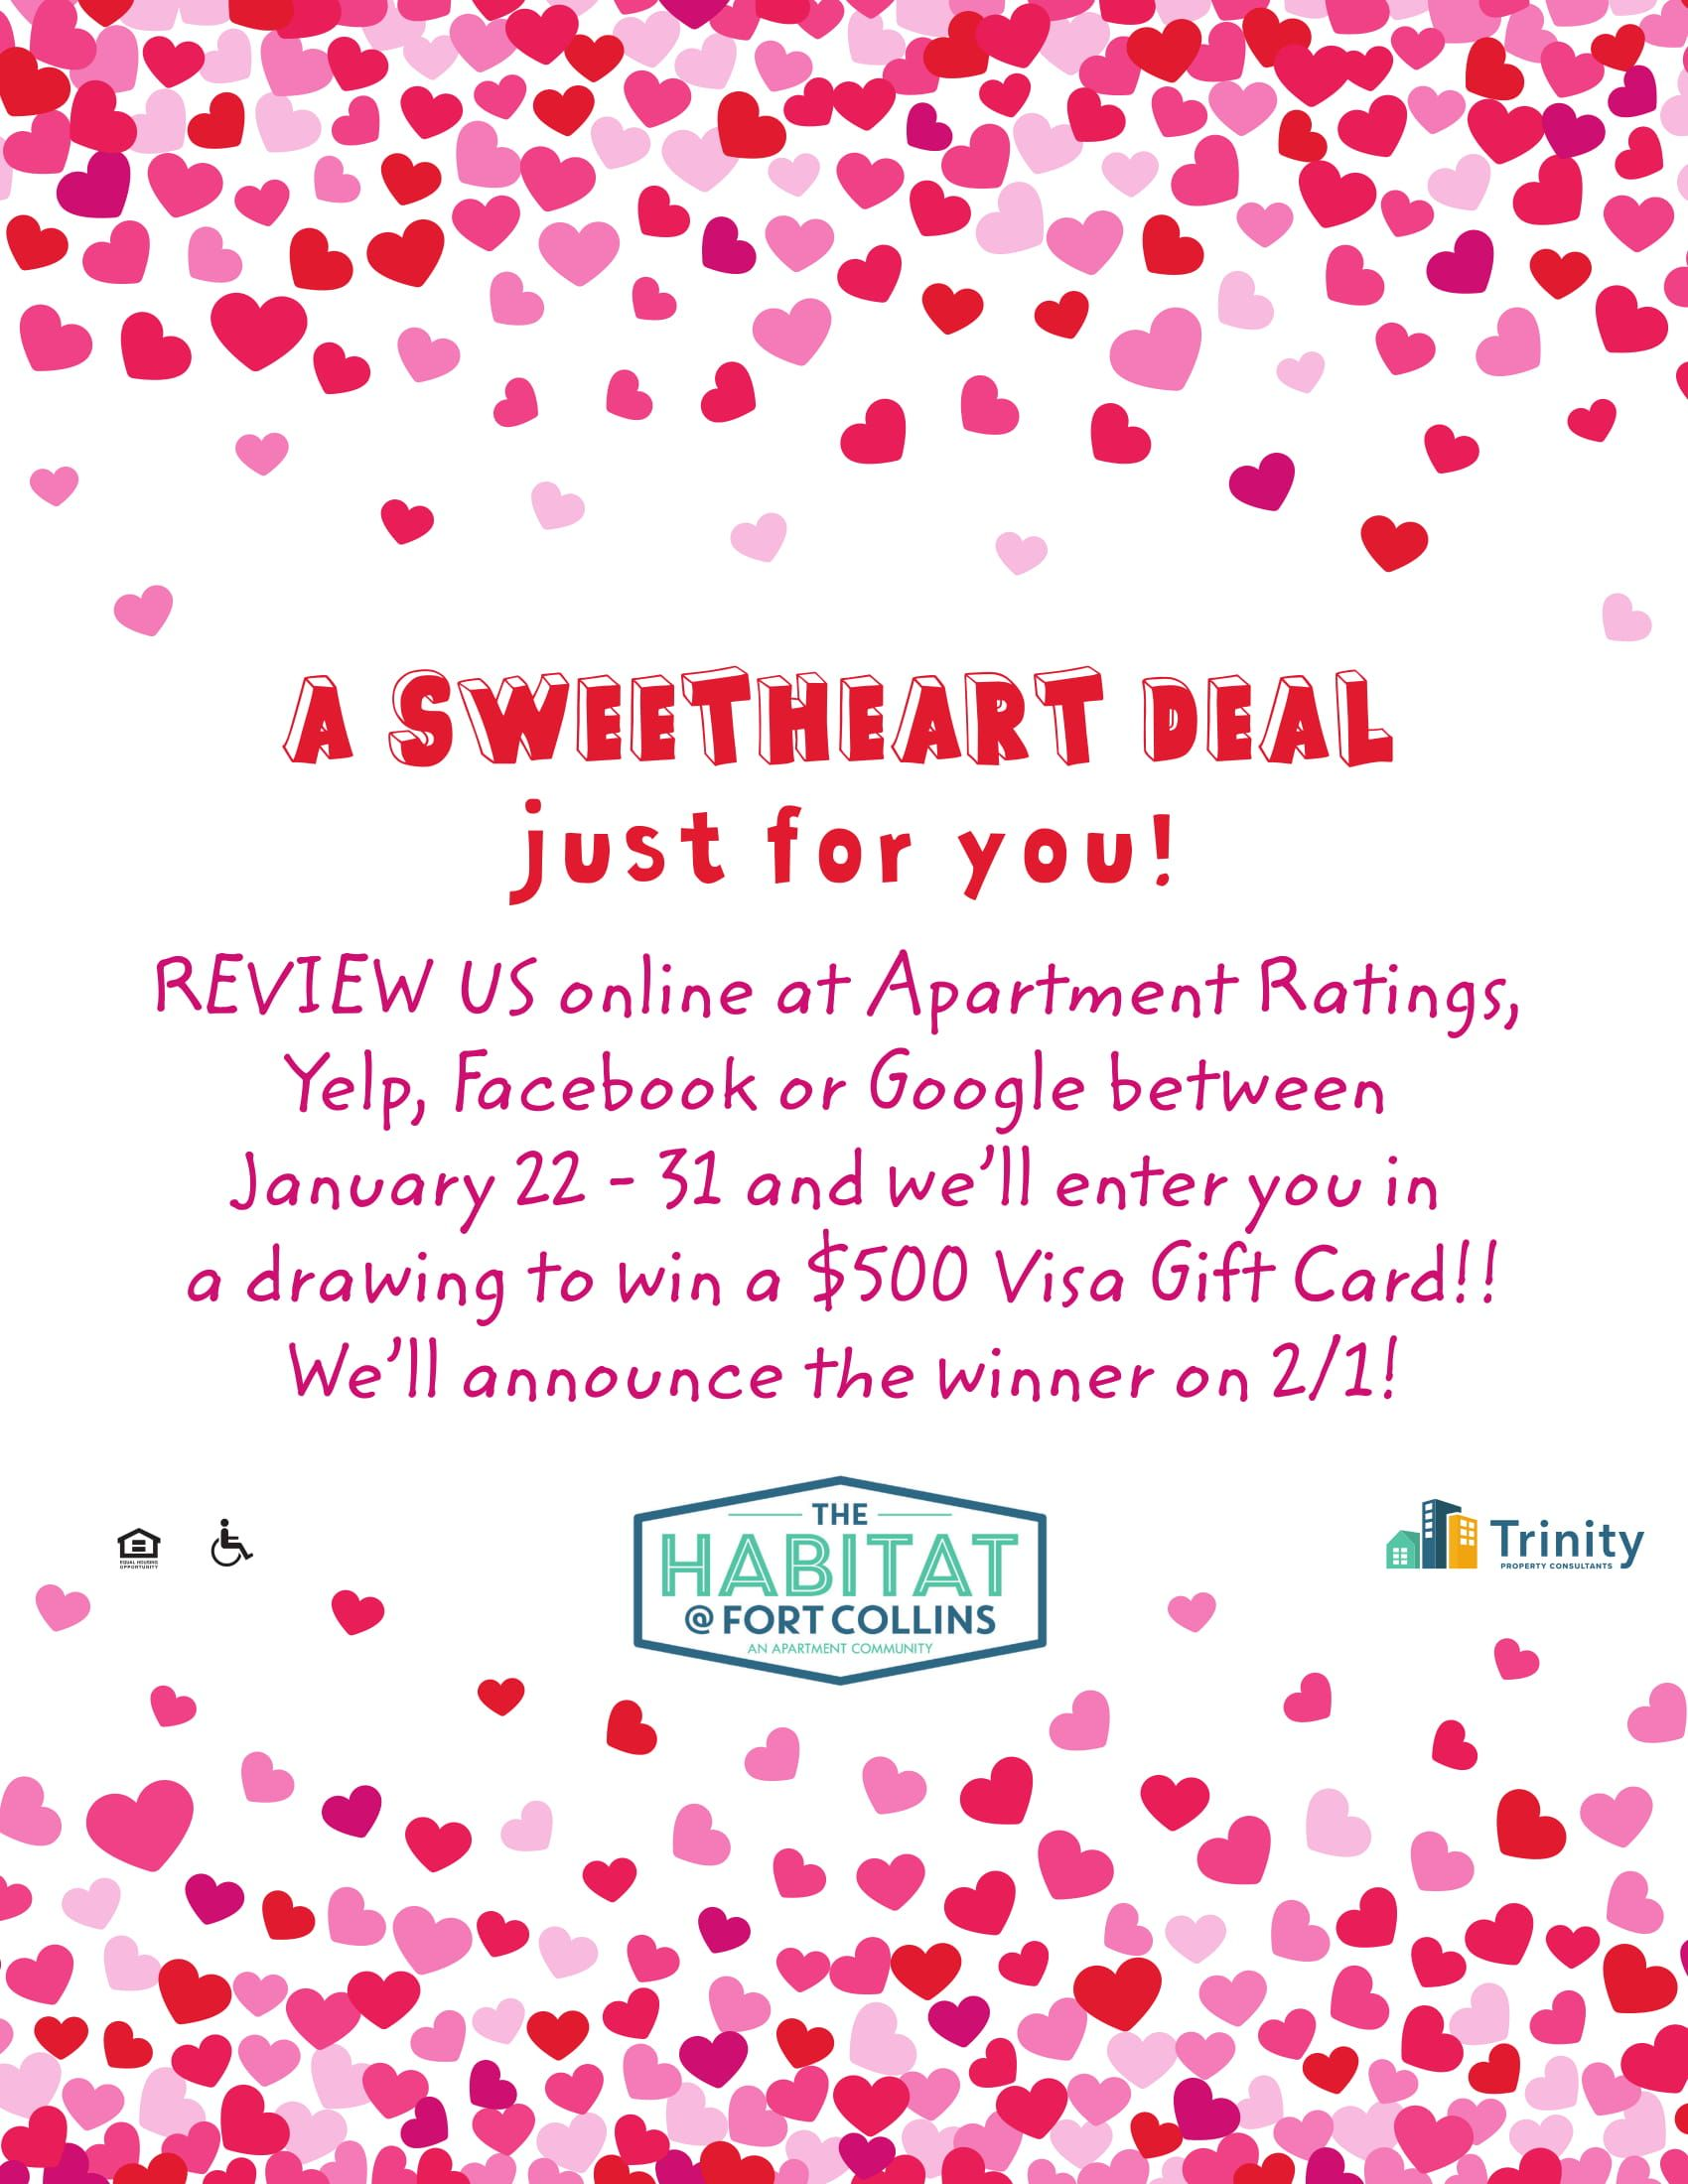 You Could Win A 500 Visa Gift Card All You Have To Do Is Review Us Online And You Ll Be Entered It S As Fort Collins Visa Gift Card Fort Collins Apartments